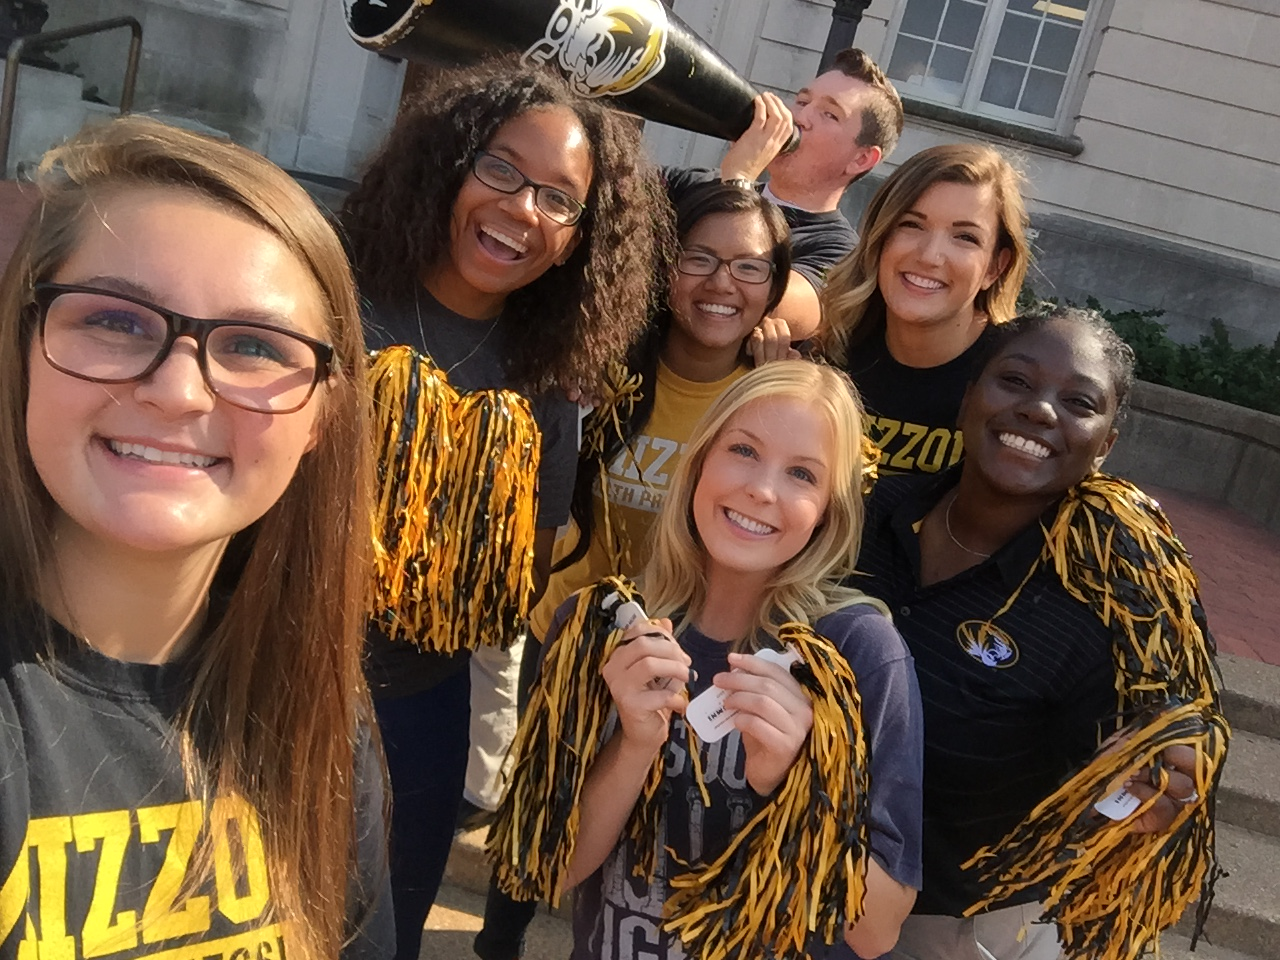 Students with Mizzou T-shirts and poms